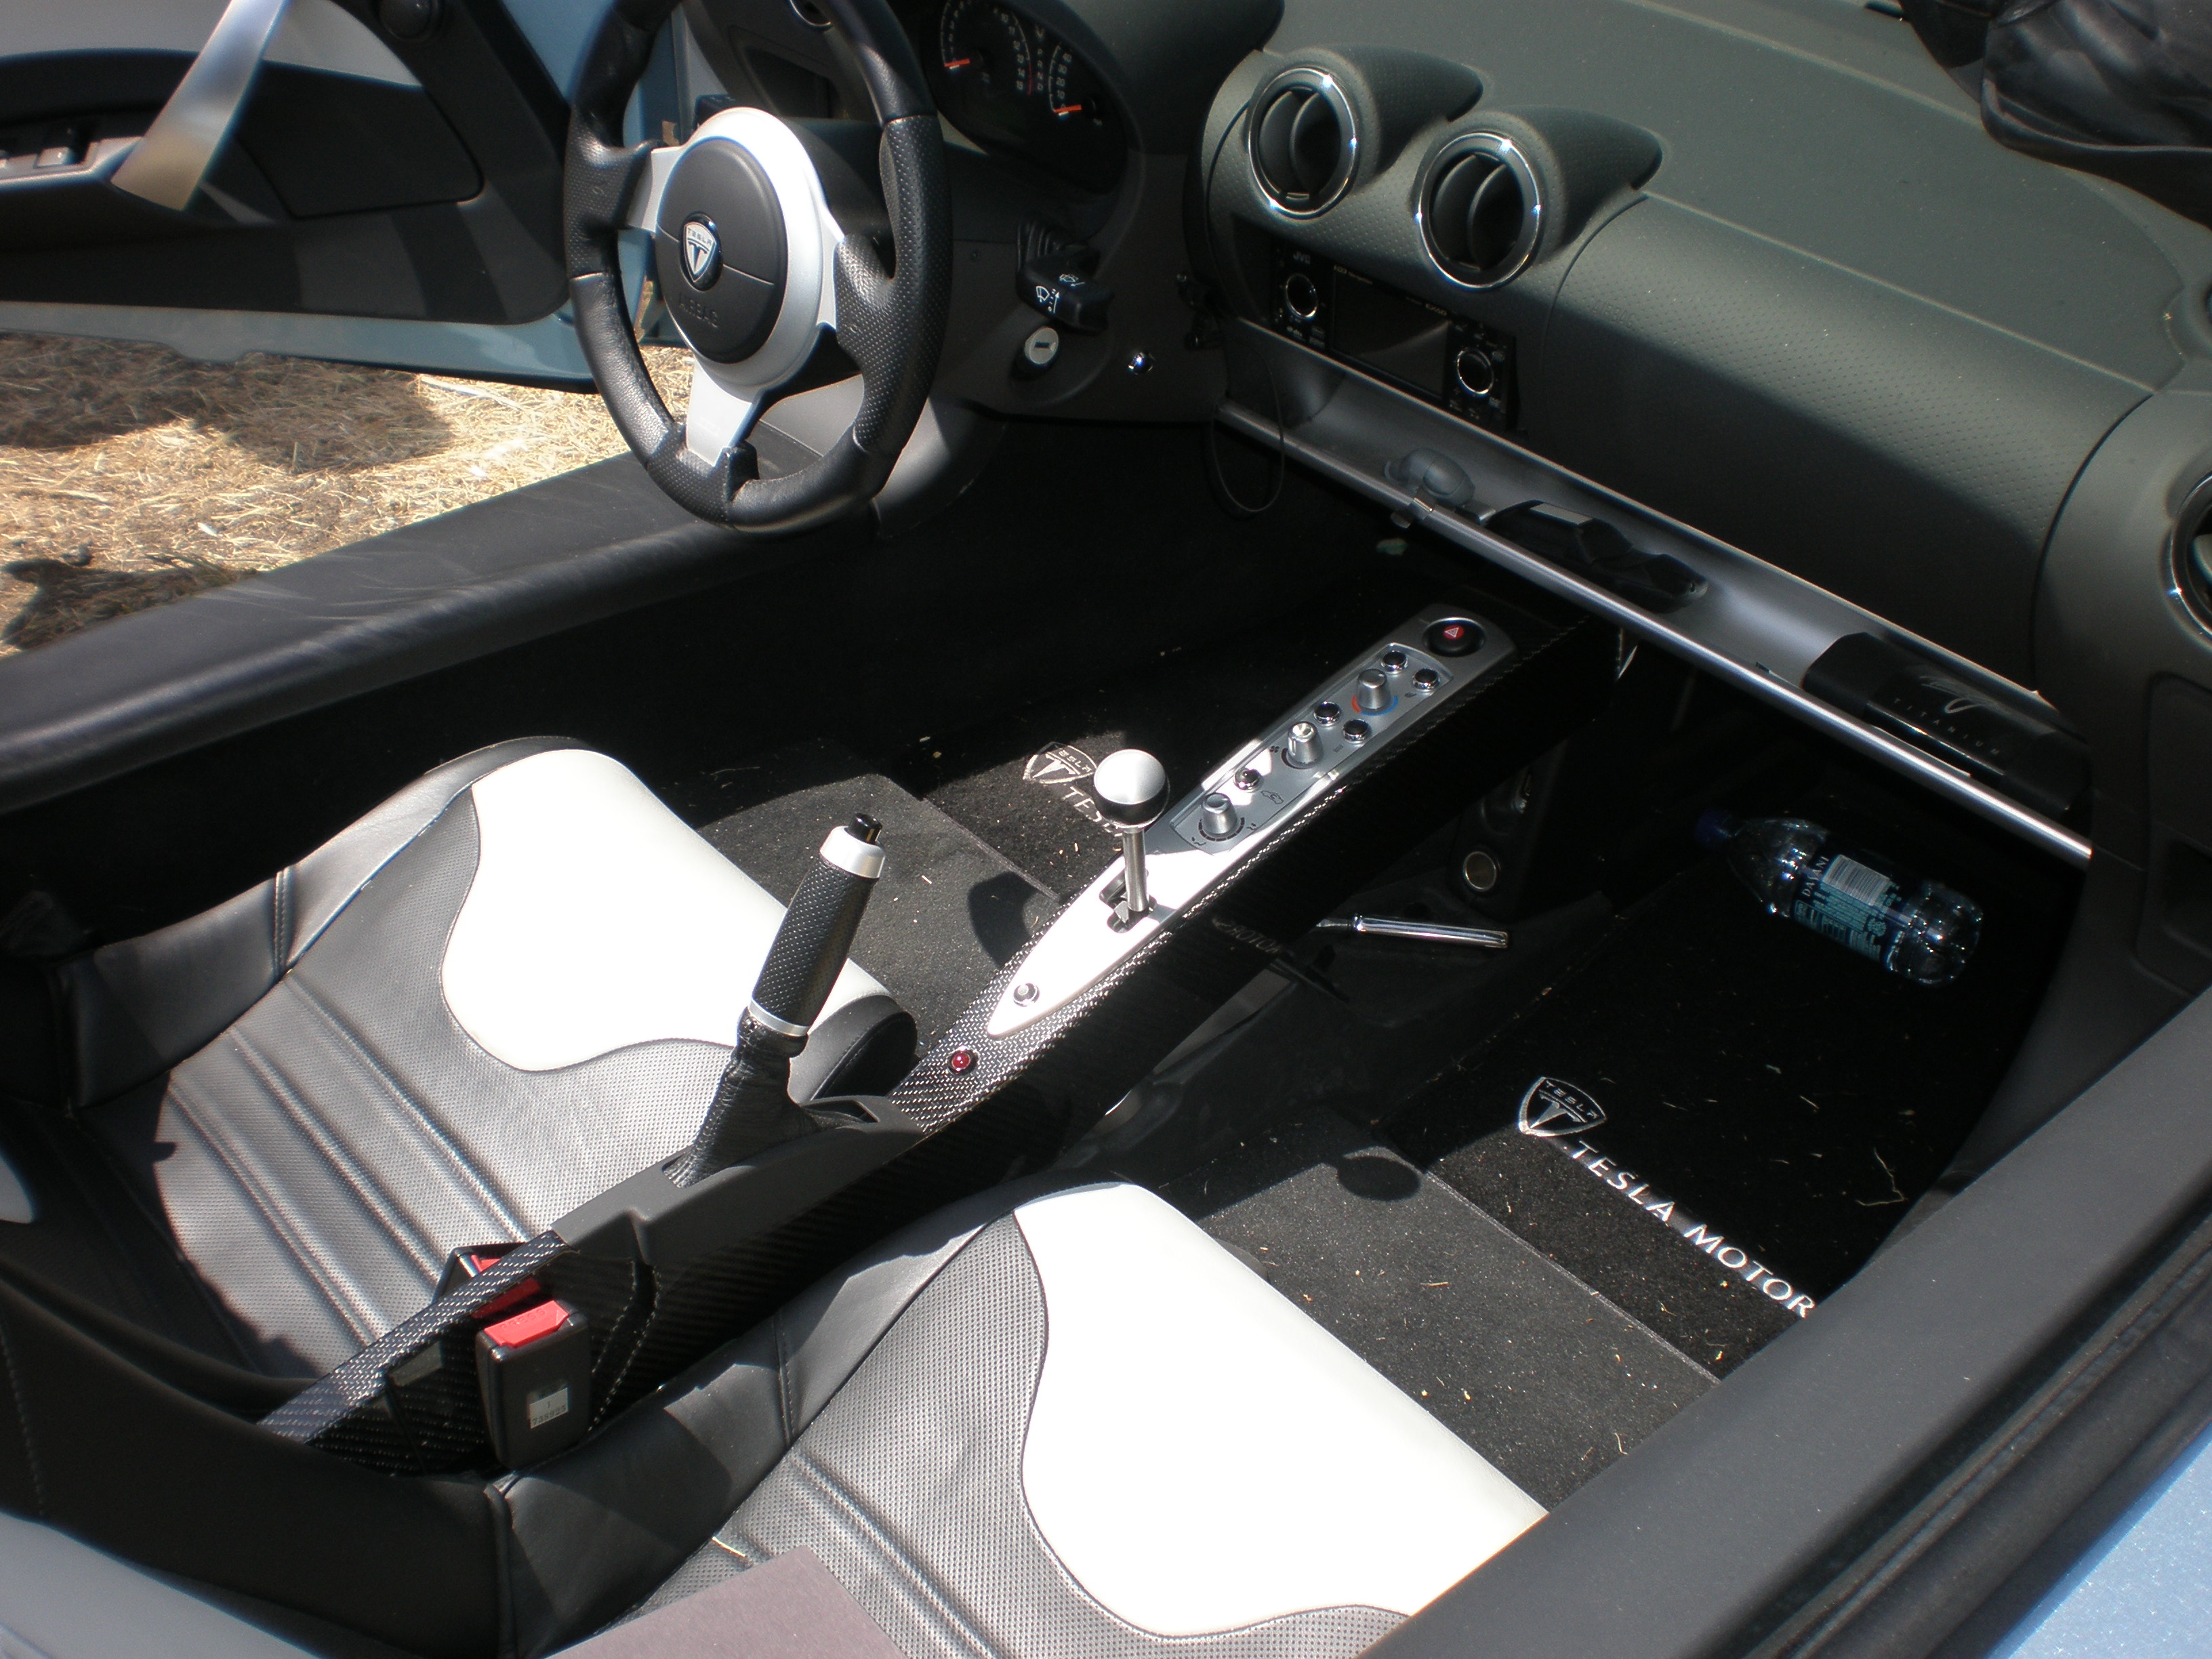 Tesla S Interior >> File:Blue Tesla Roadster interior.JPG - Wikimedia Commons